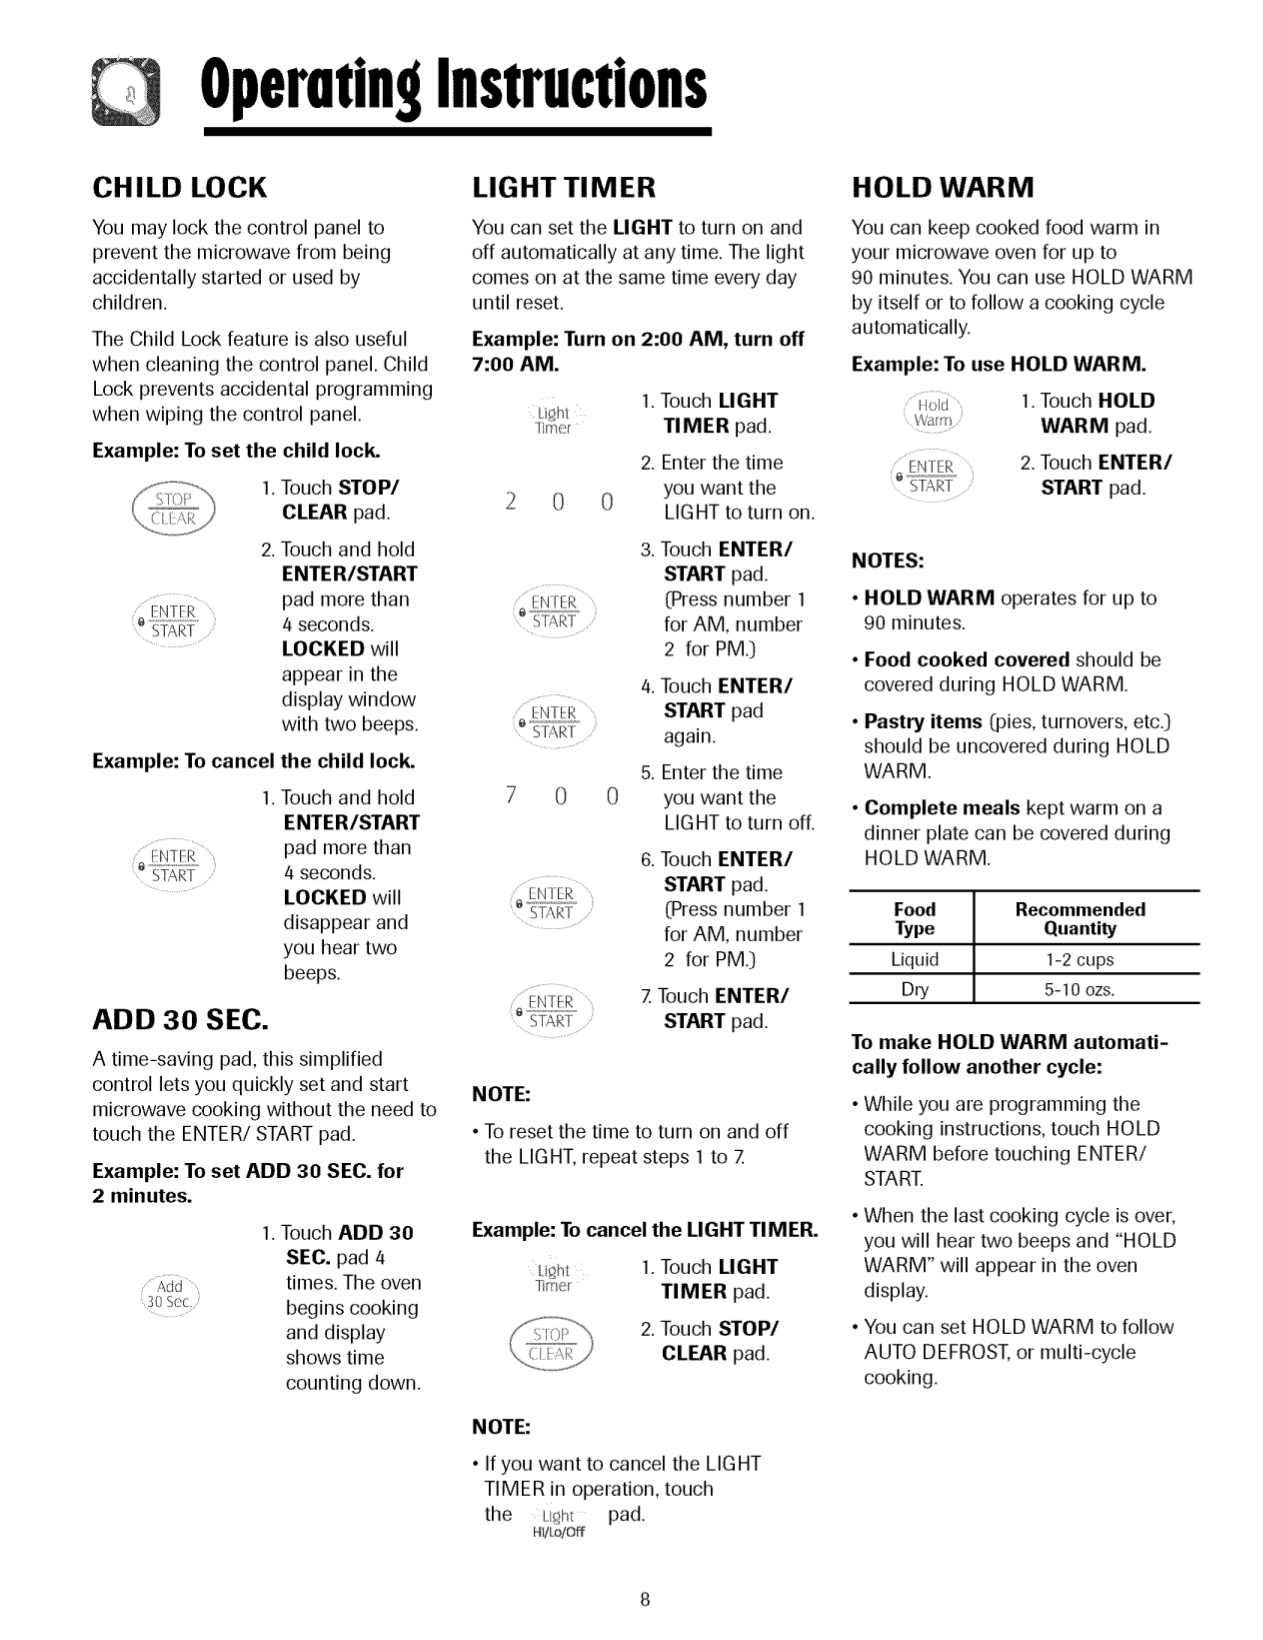 PDF manual for Maytag Microwave MMV4205AA